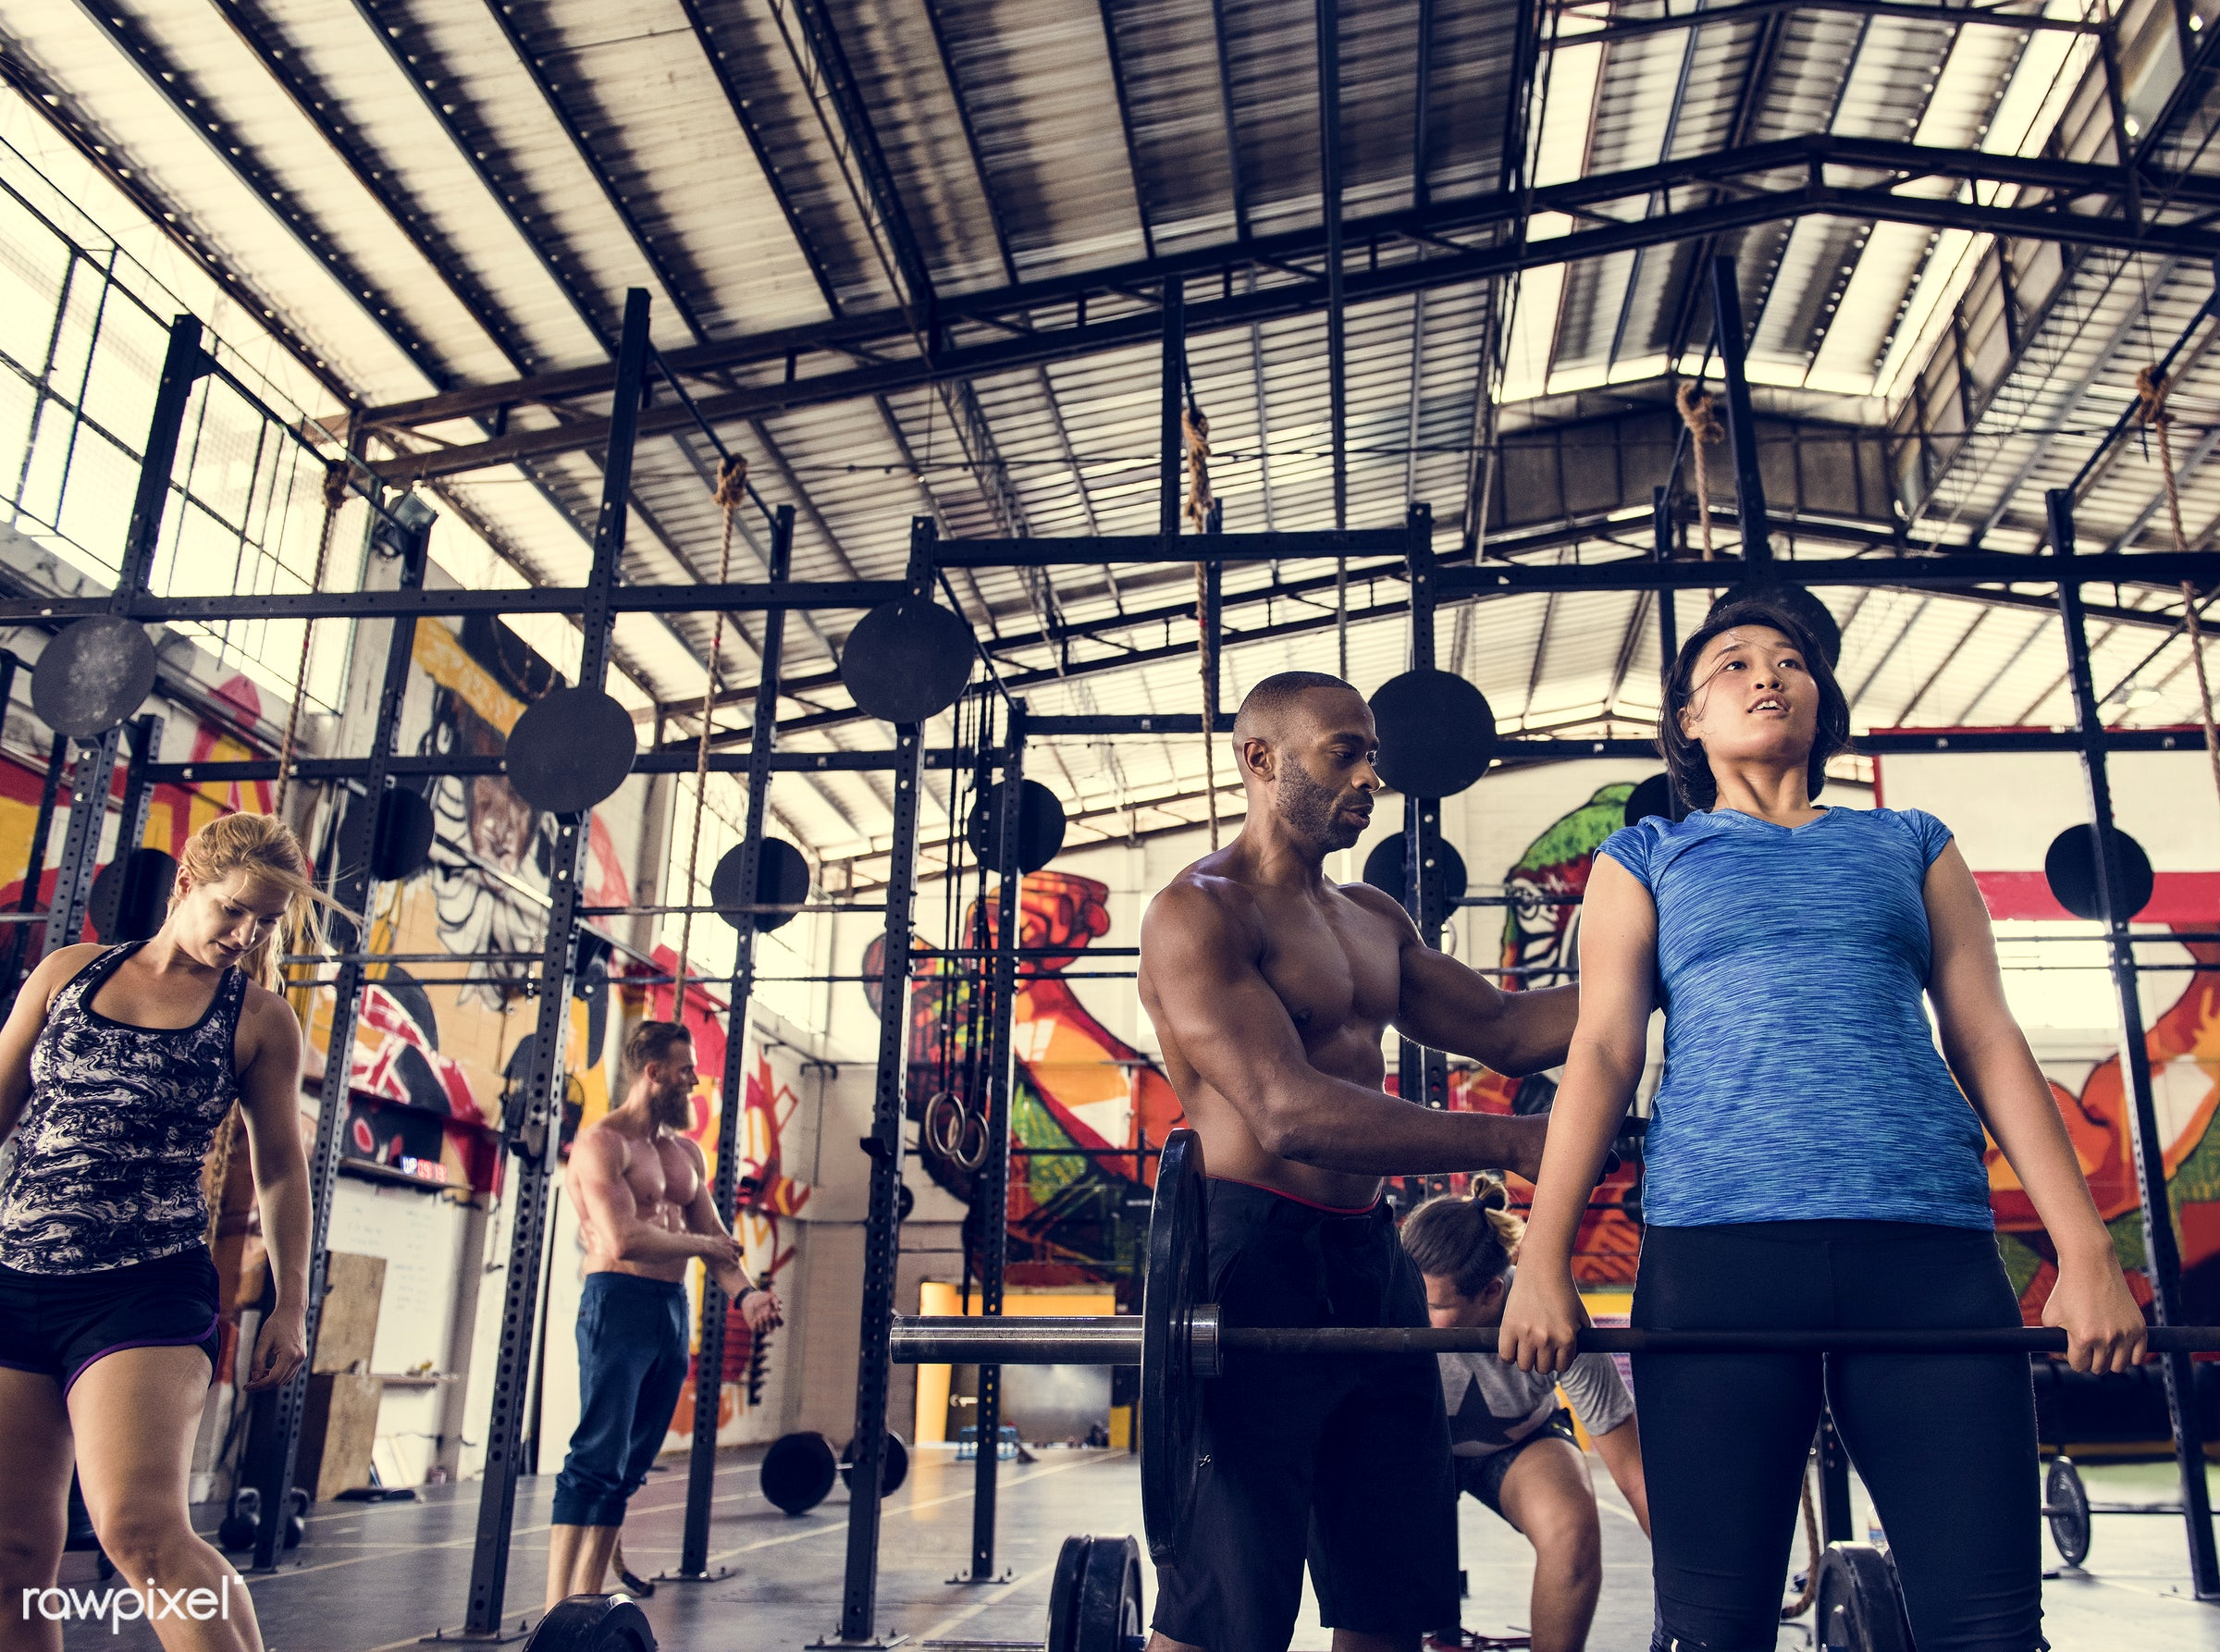 At the gym - active, activity, african descent, asian ethnicity, athlete, athletic, barbell, body, buff, caucasian,...